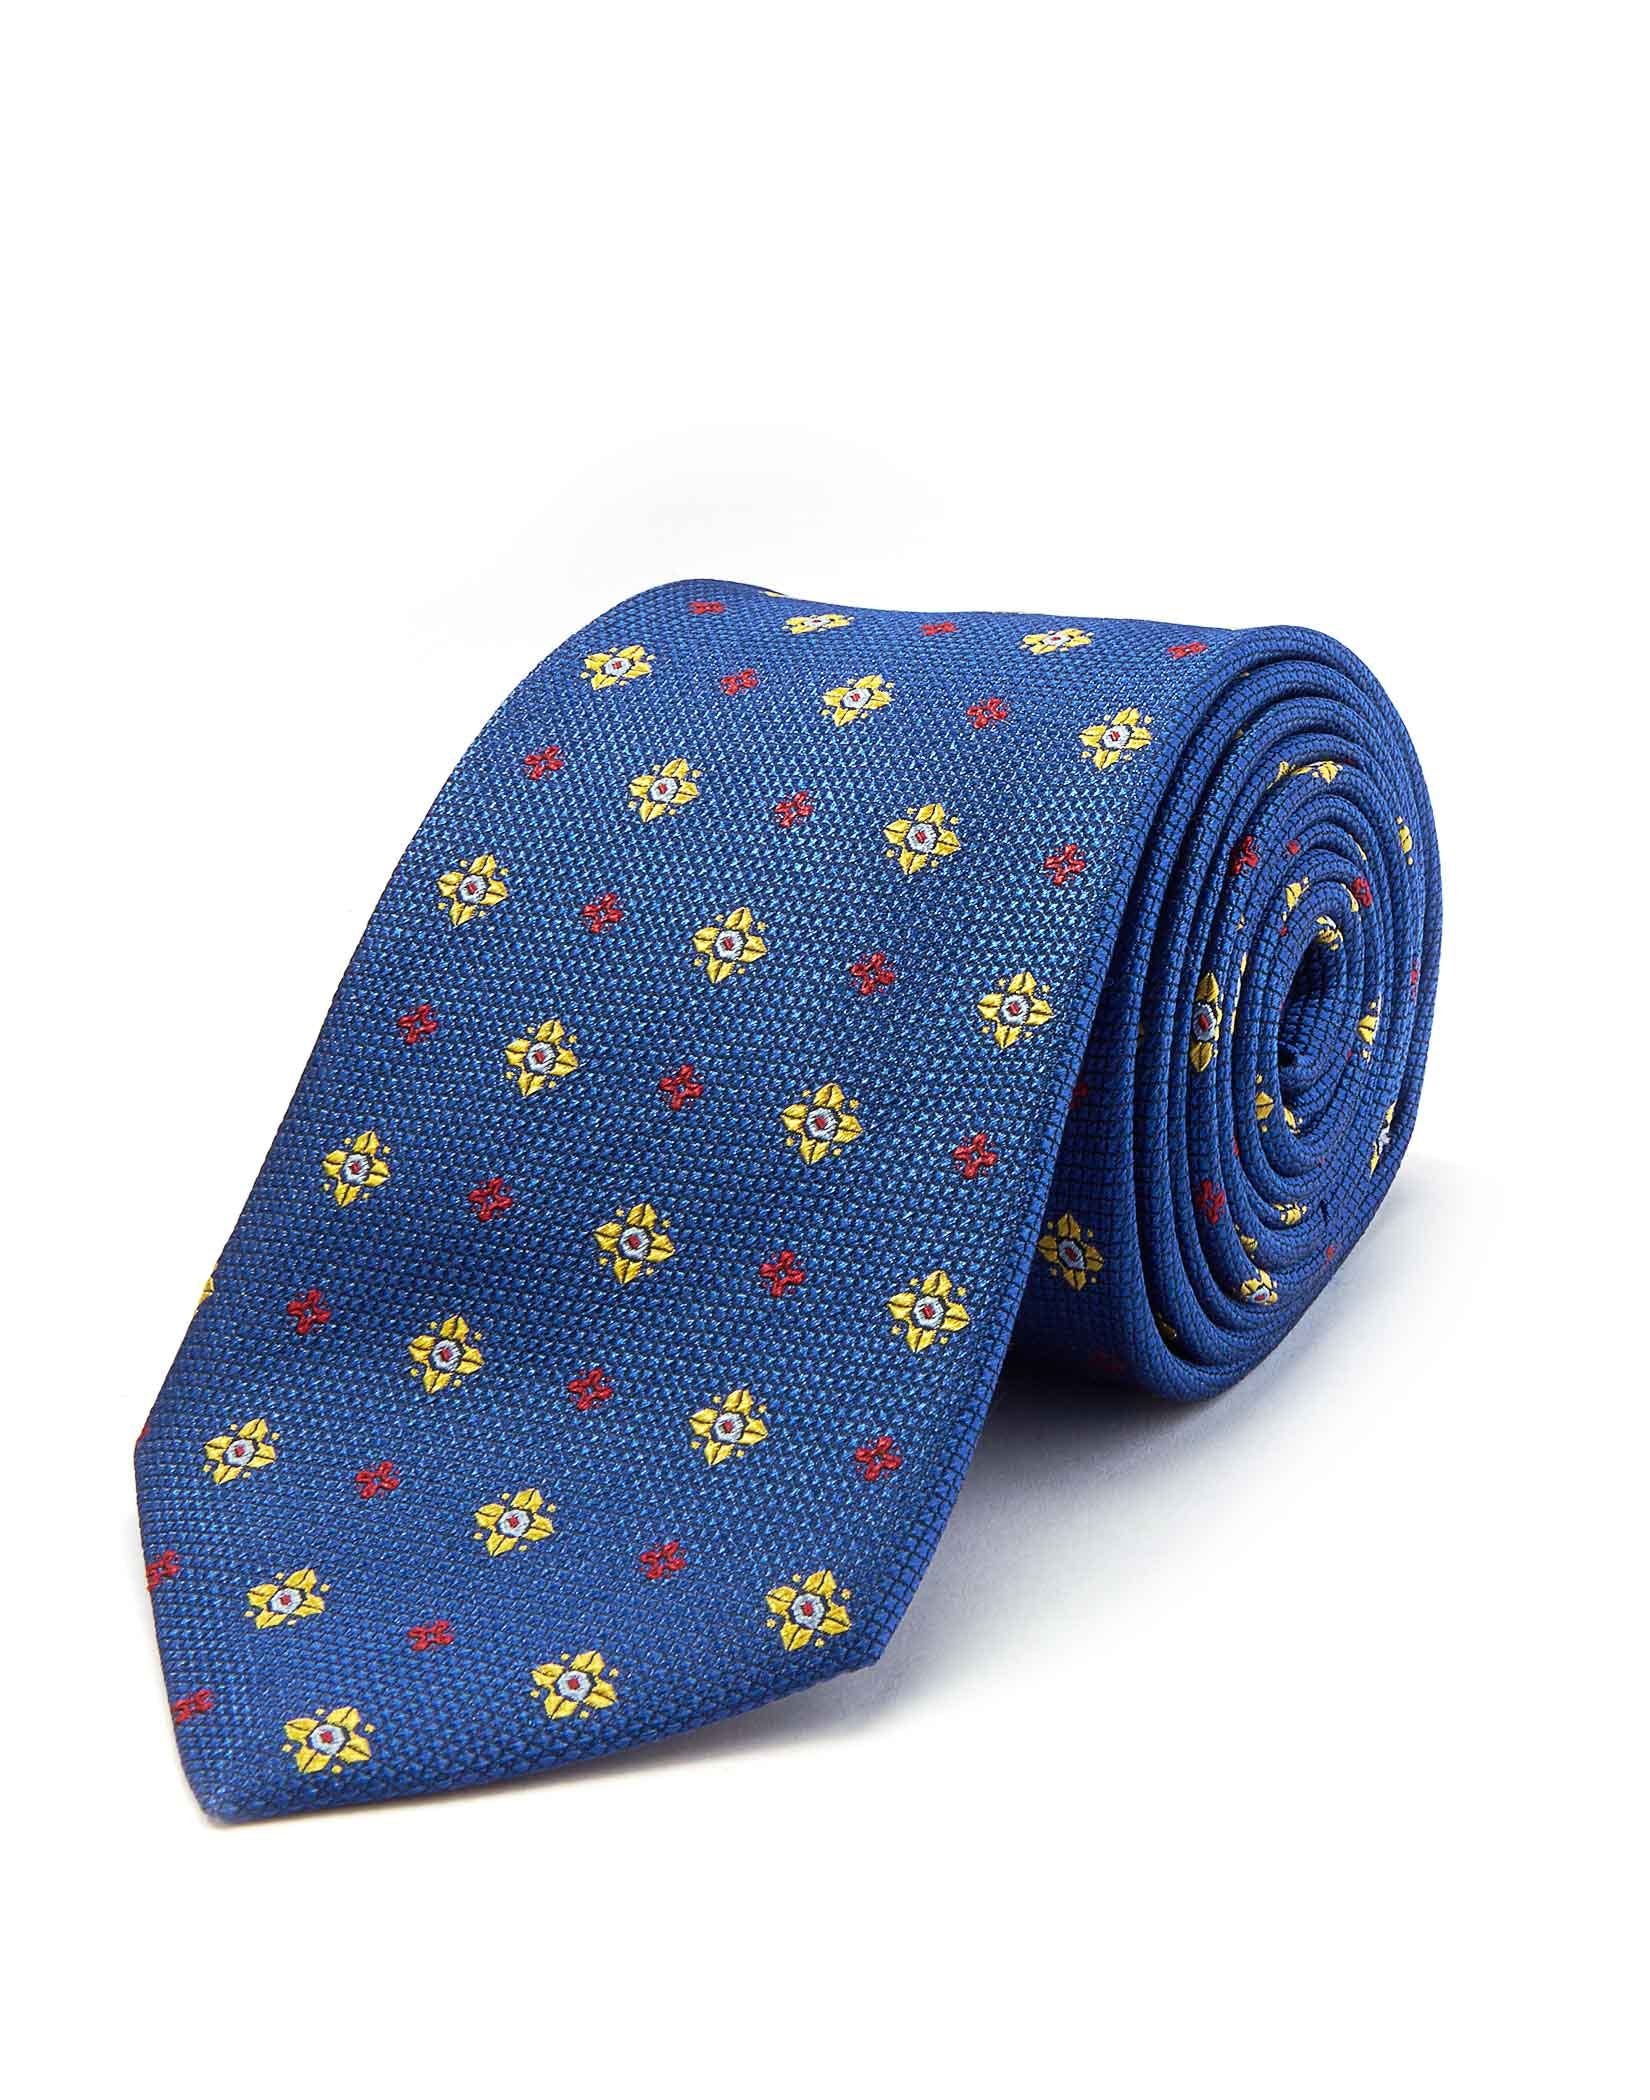 Royal/Red/Yellow Floral - Woven Silk Tie